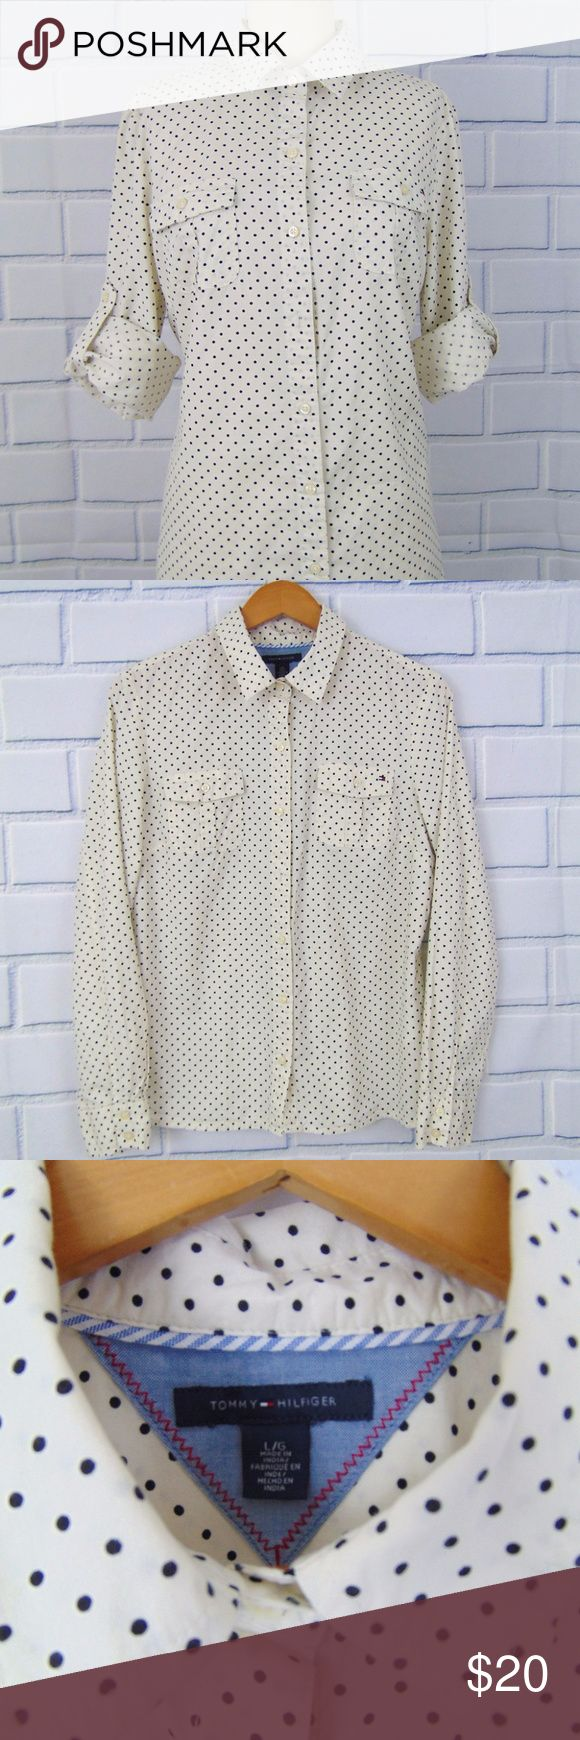 """NWOT Tommy Hilfiger Polka Dot Long Sleeve Top - L Pretty Tommy Hilfiger Polka Dot Long Sleeve Shirt  Off White and Black  Button Front  Collar  Darts in Bust Long Sleeves Roll Tab Chest Pocket  100% Cotton Fabric  New without Tags. No defects or flaws See images.  Measurements (laid flat, unstretched): Shld-to-shld: 15.5"""" Chest 19.5"""" Length 25.5"""" Sleeves 24"""" Waist 19"""" Hem 21.5"""" Material Stretch? yes  Questions? Offers Welcome. Item ships out the next day. Tommy Hilfiger Tops Button Down…"""